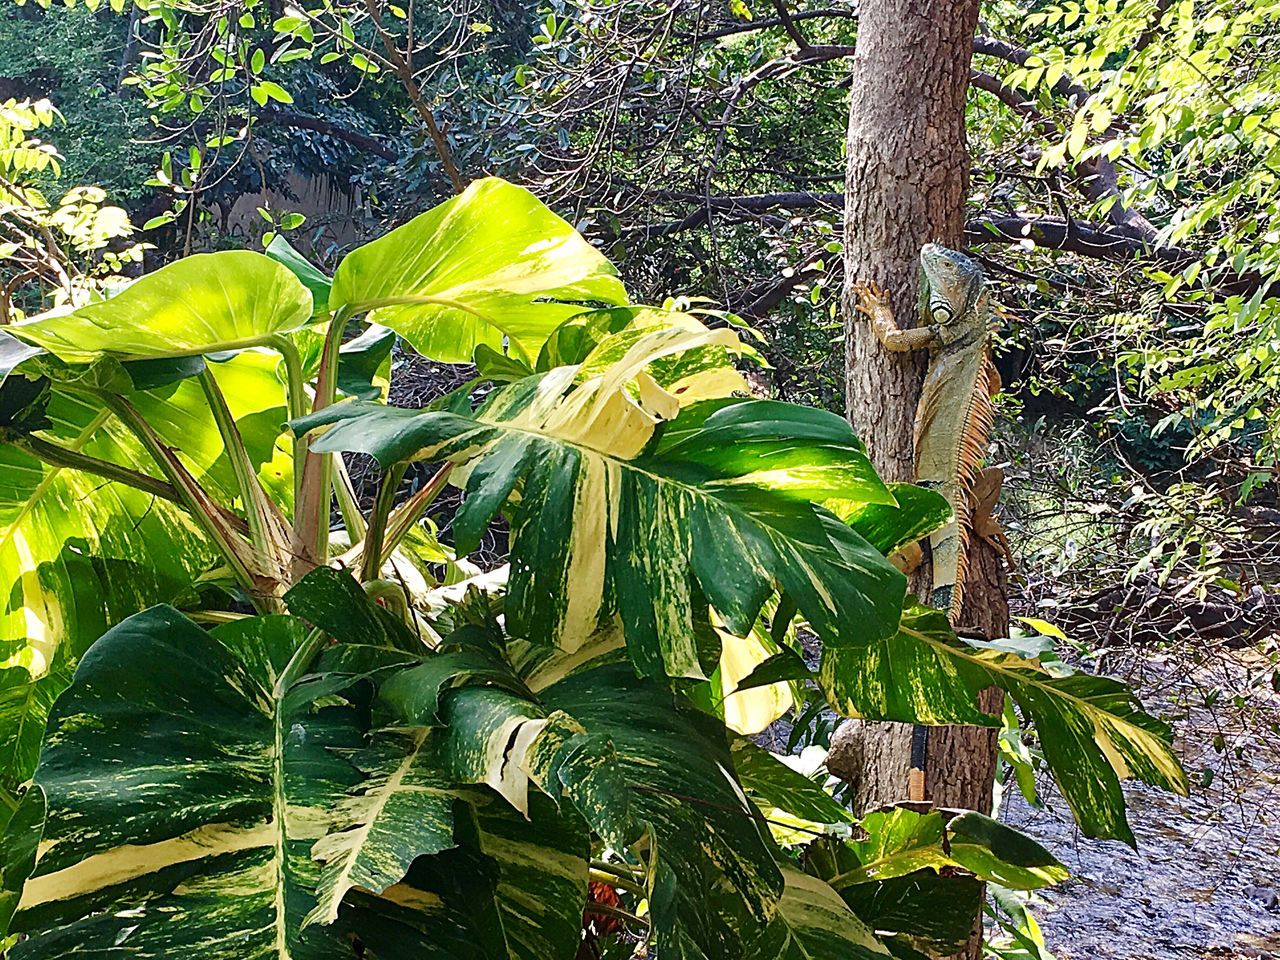 Spot the Iguana Tree Leaf Growth Nature Tree Trunk Green Color Plant Beauty In Nature No People Outdoors Iguana Iguana Photo Iguana In A Tree Forest Freshness Low Angle View Day Tree Area Lush - Description